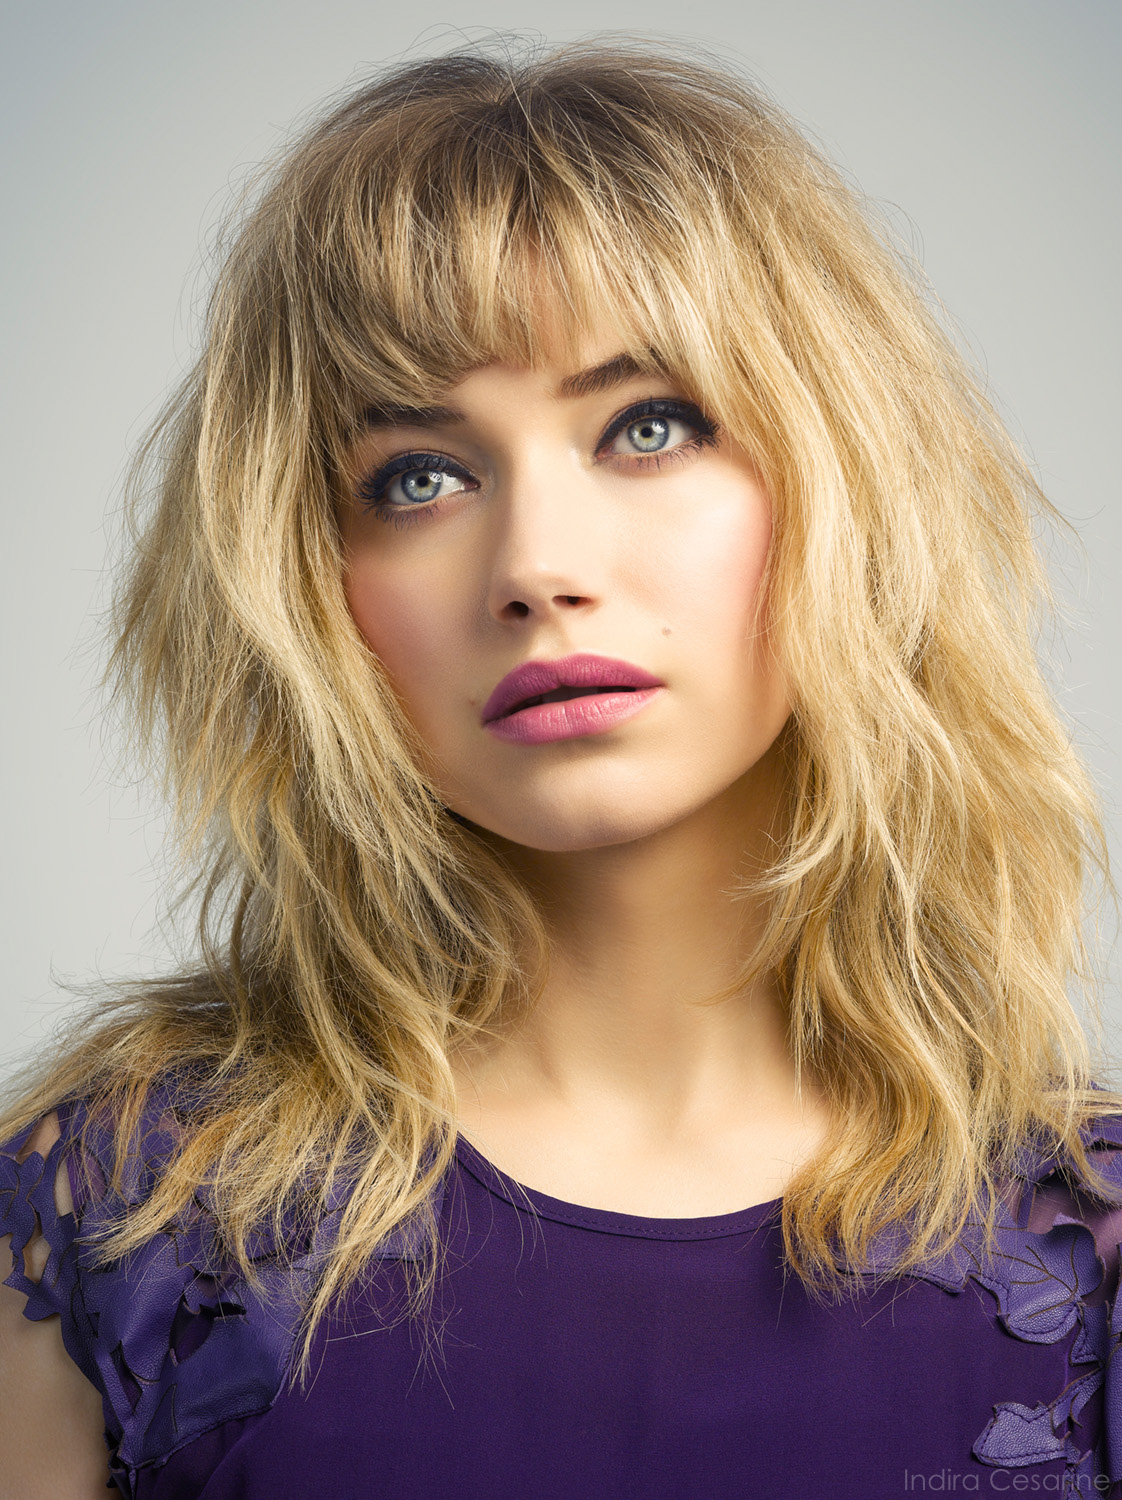 Imogen-Poots-Photography-by-Indira-Cesarine-010.jpg